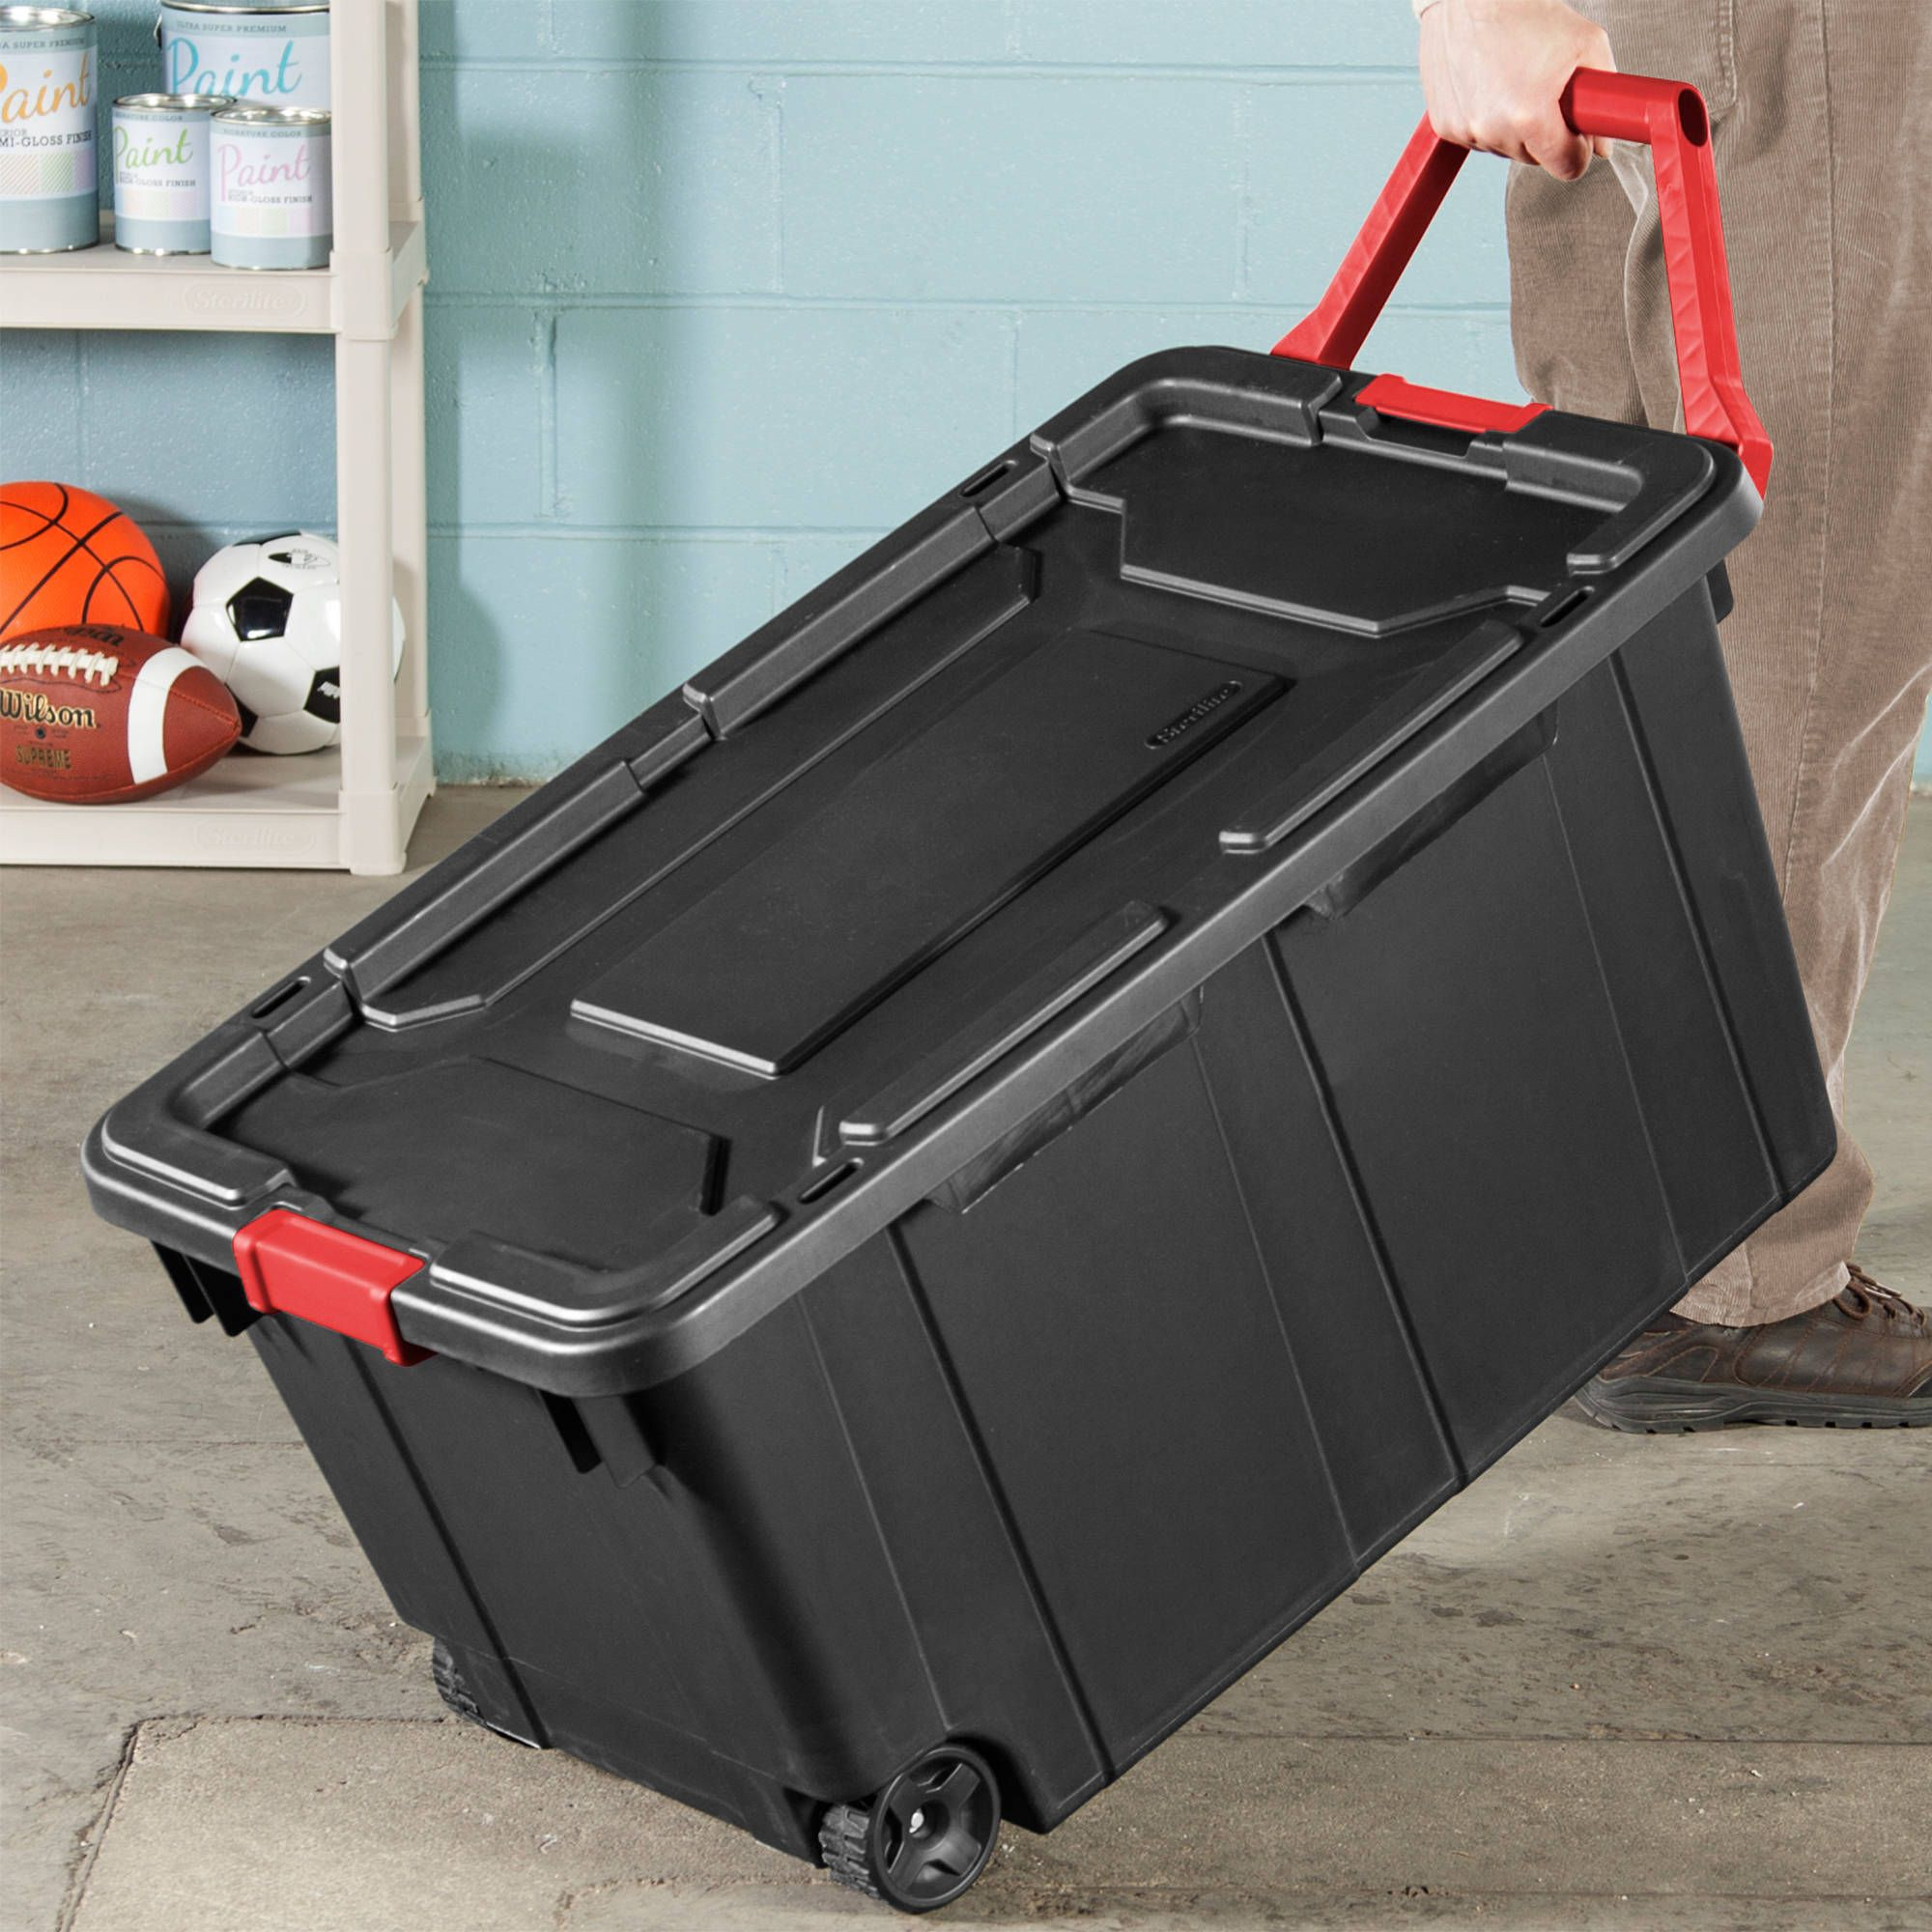 Where To Put Wheeled Storage Bin Interior Decorating Colors Storage Bins With Wheels Storage Containers With Wheels Plastic Box Storage